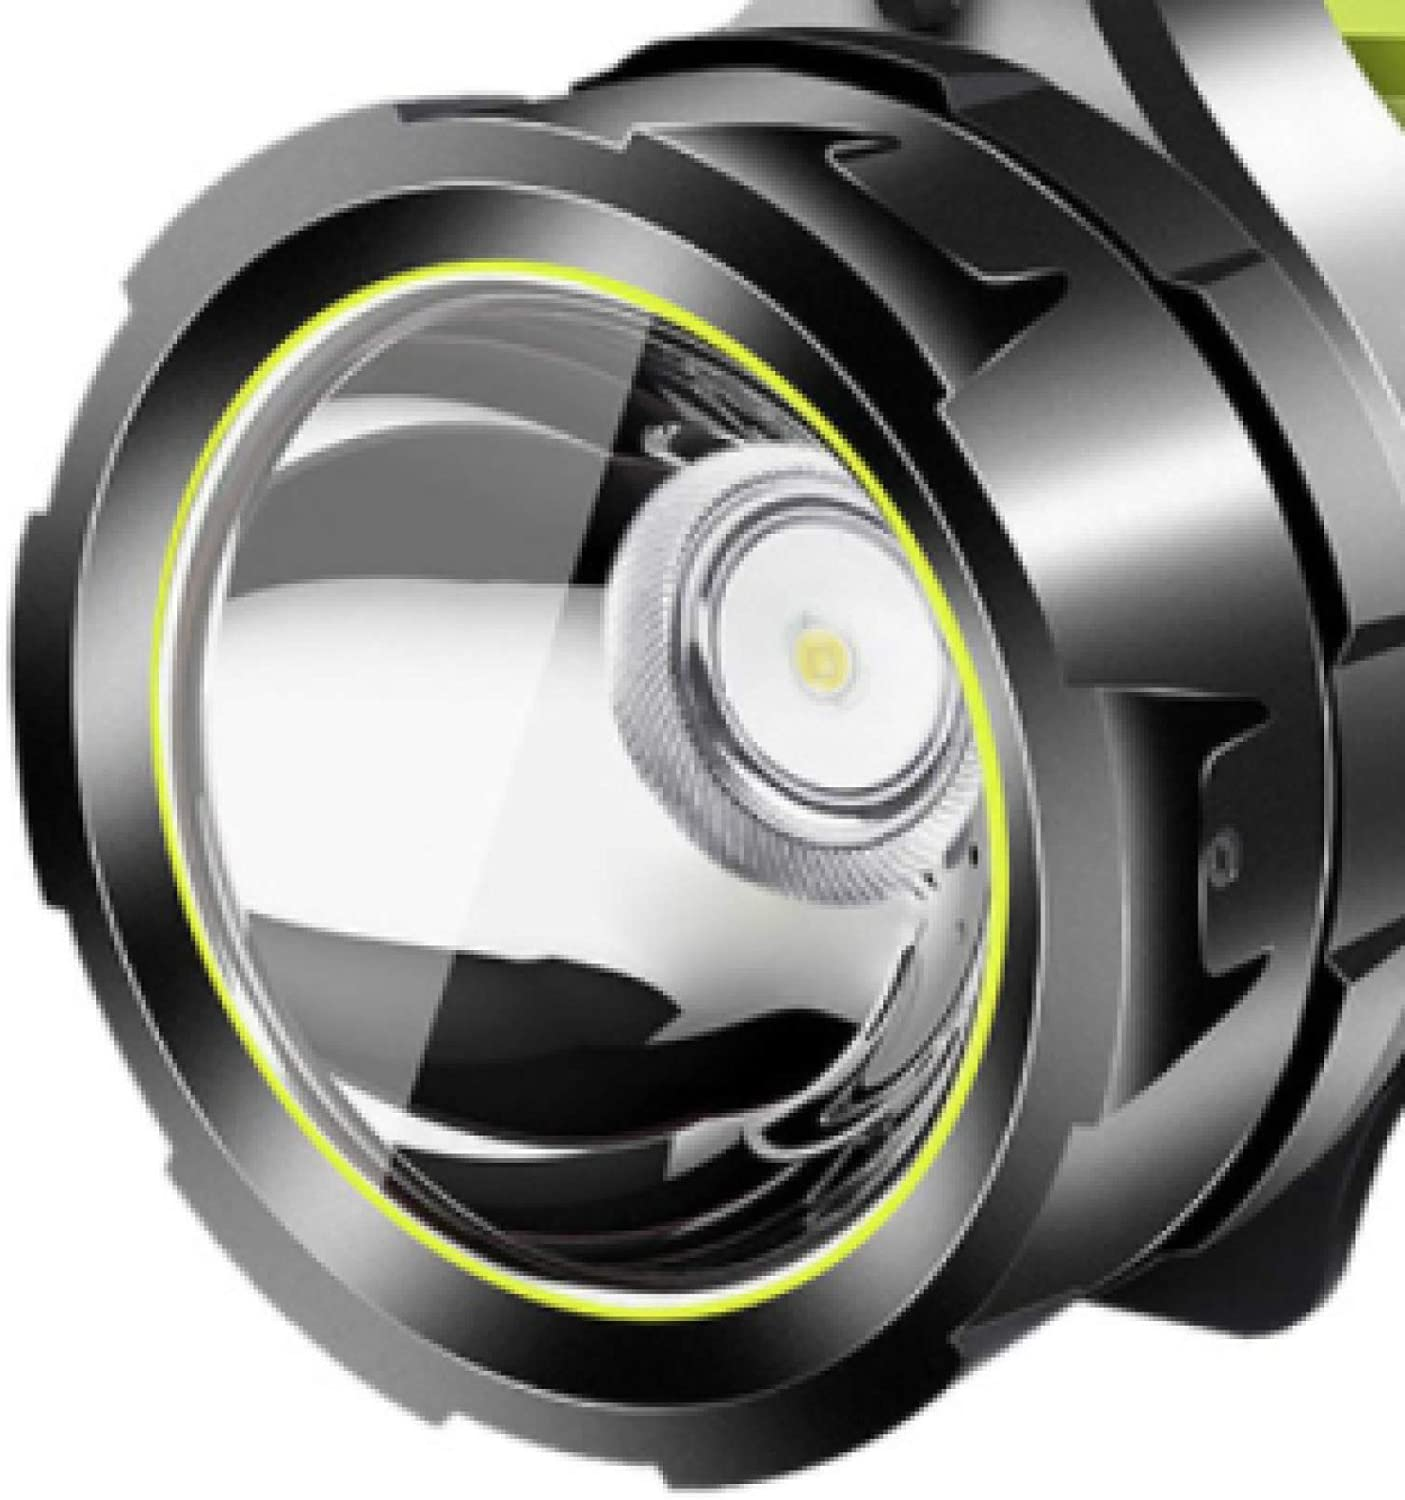 Flashlight 100w Powerful Rechargeable Searchlight Camping Spotlight Ultra-Long Standby Torch with USB Output Lantern 881B 881b